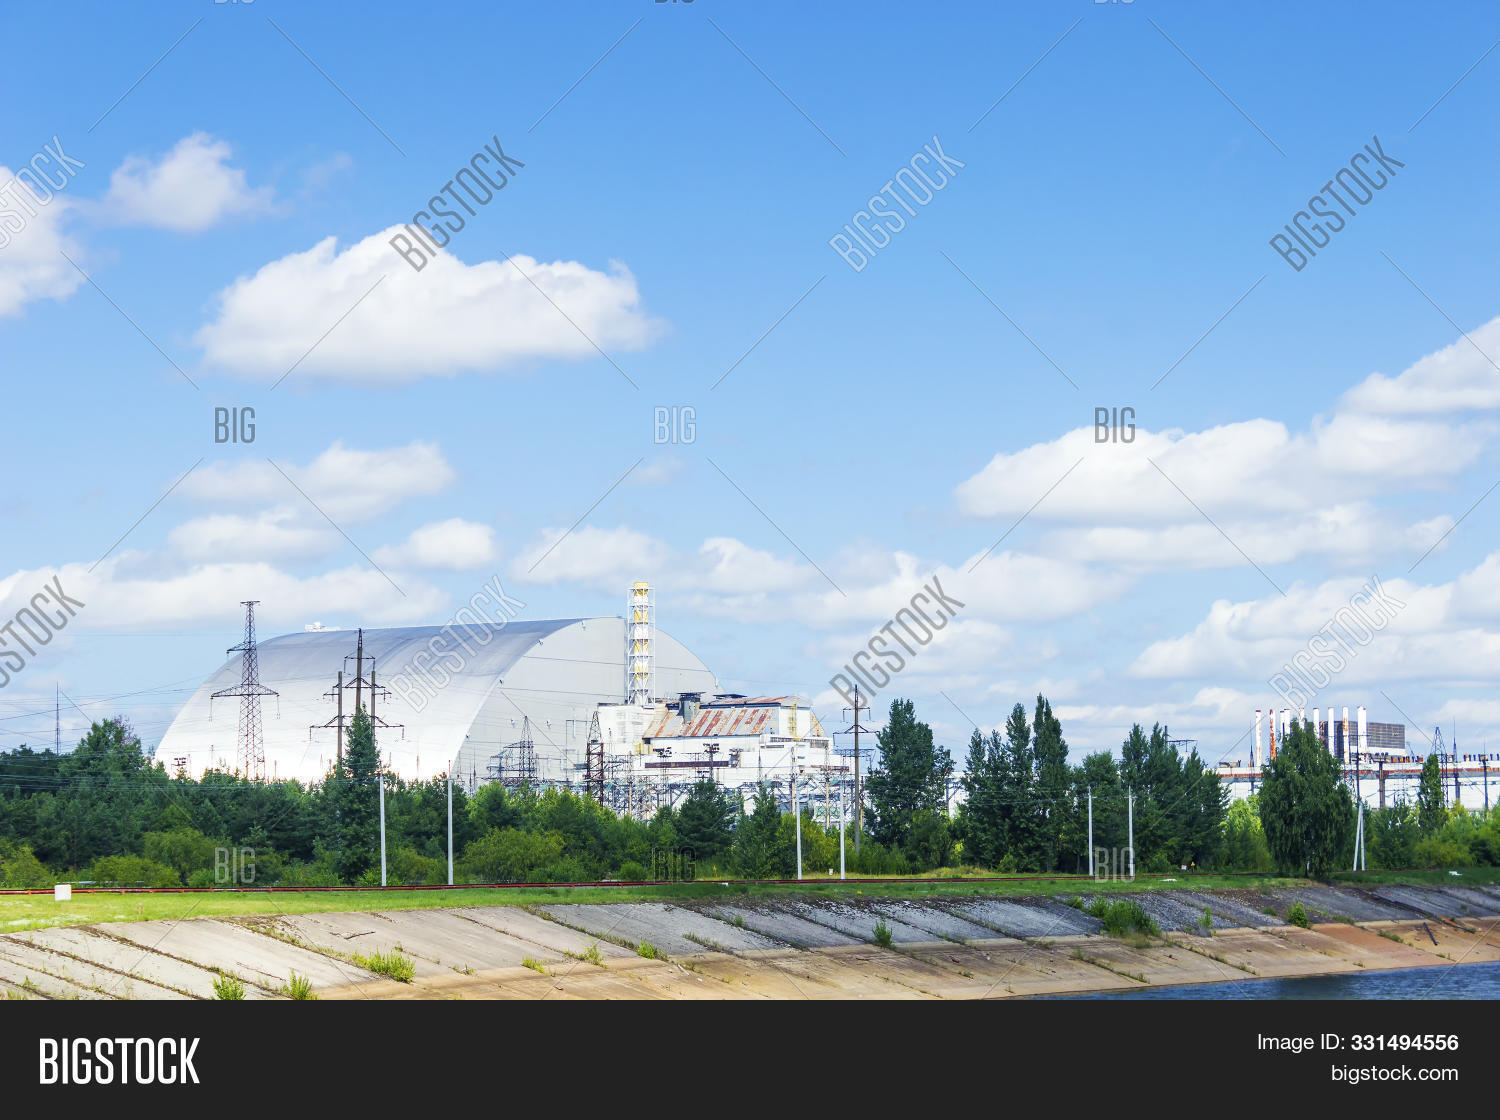 Chernobyl sarcophagus over the 4th reactor, Ukraine. Chernobyl nuclear power plant.